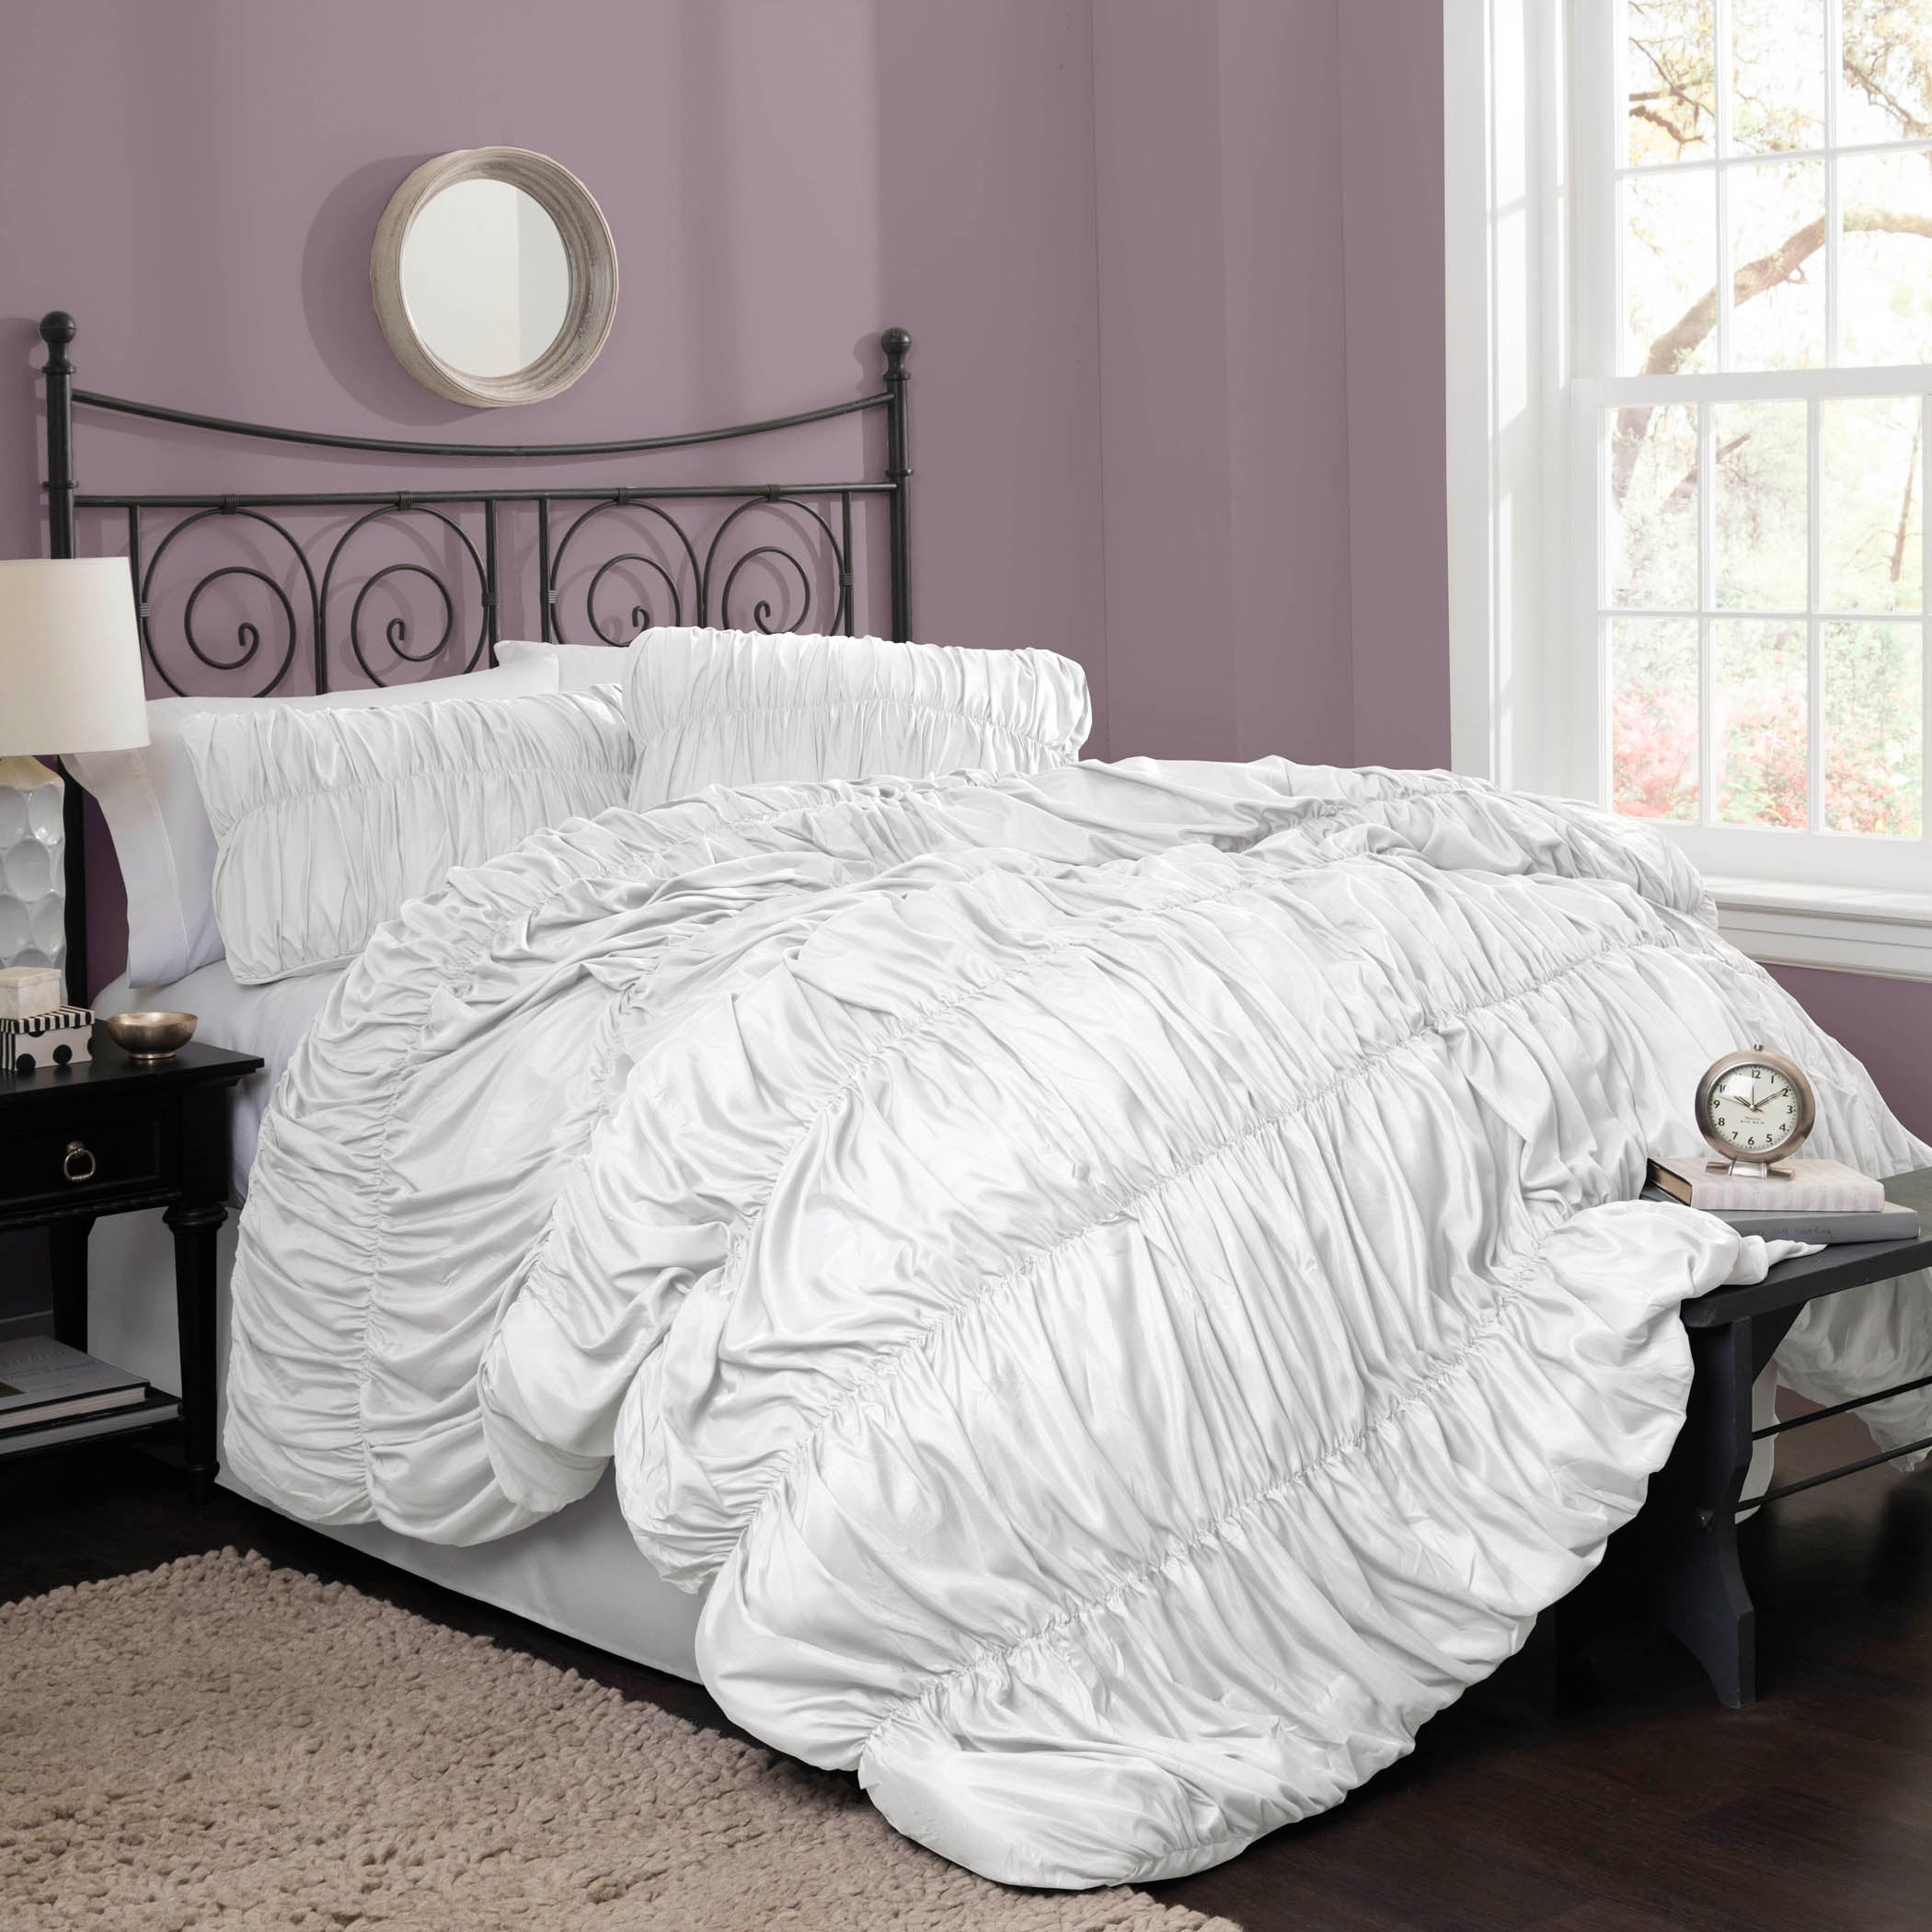 free seafoam sea com set shipping product overstock sia orders on glass of bed bath amy comforter bedding